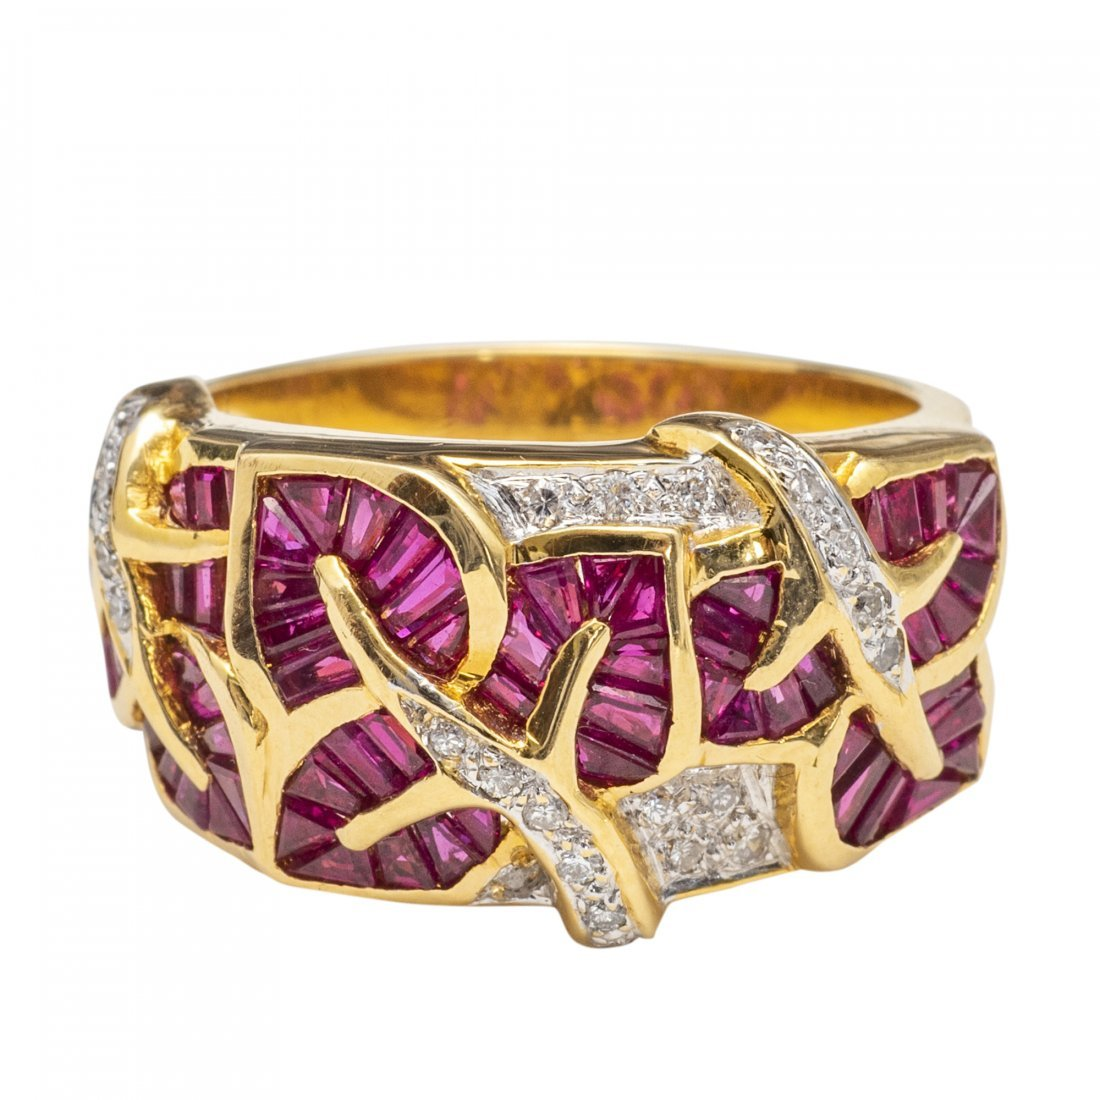 18kt Gold, Ruby and Diamond Ring